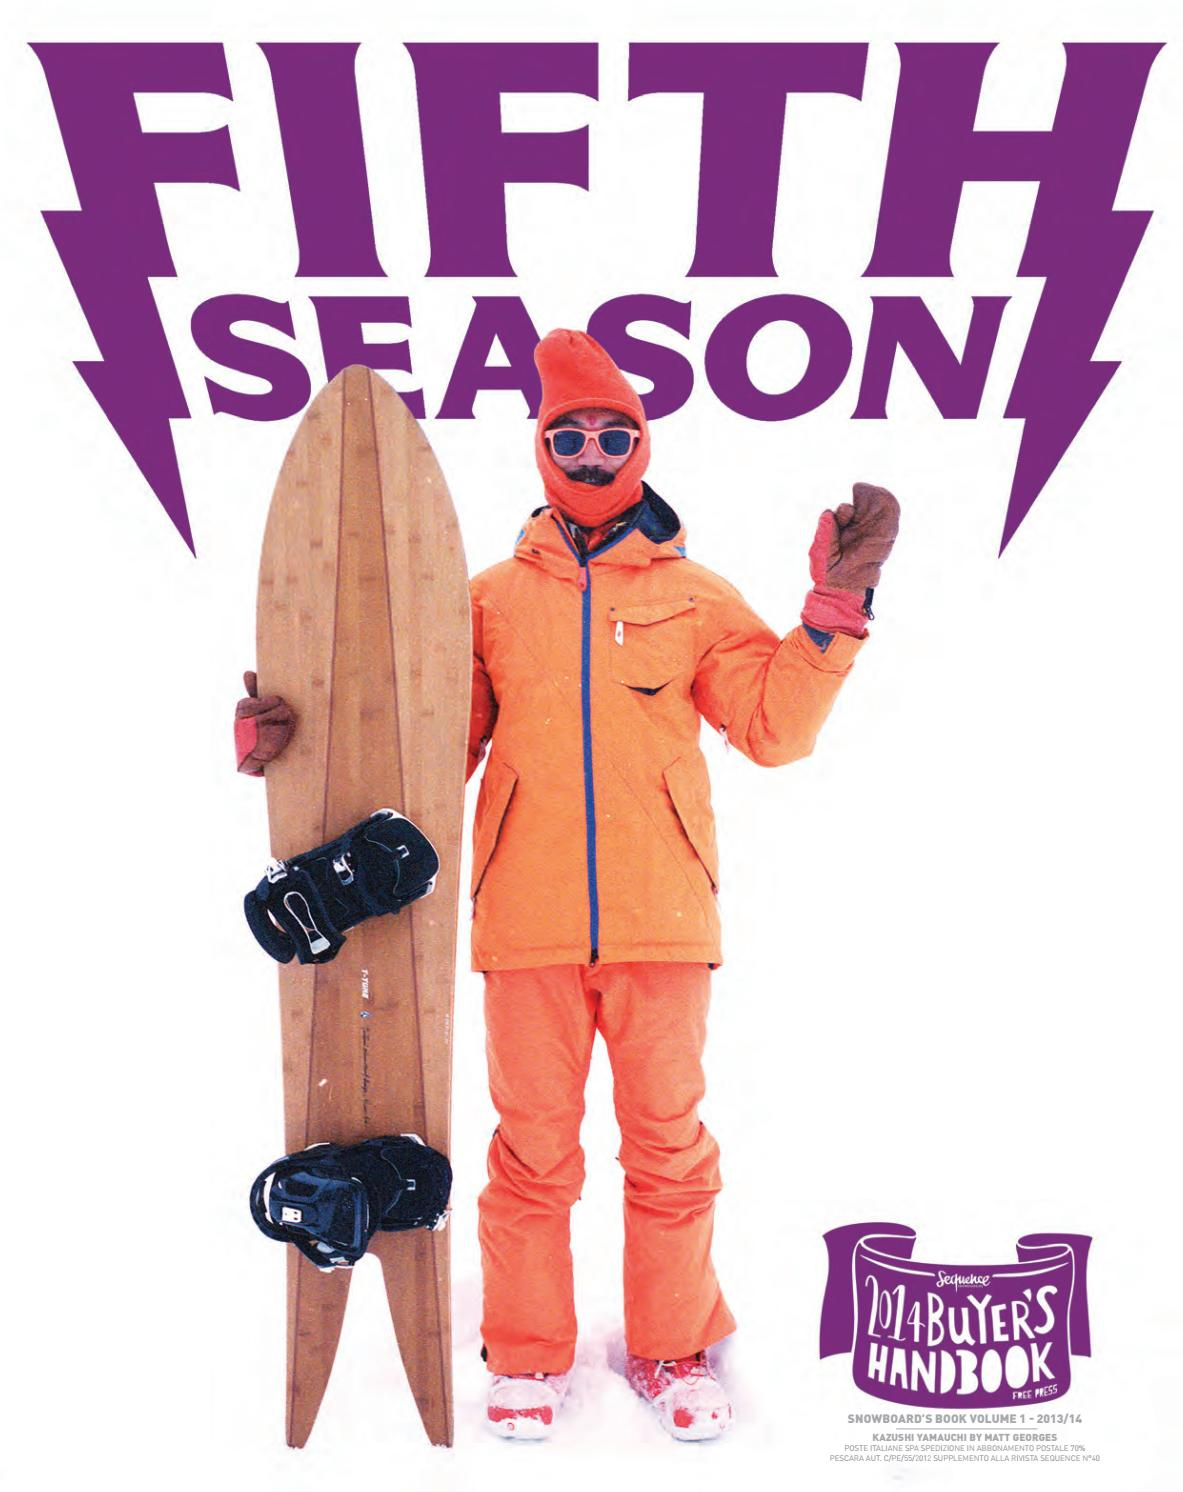 Fifth Season Buyer s Guide 2014 by Hand Communication - issuu 232a45784e57